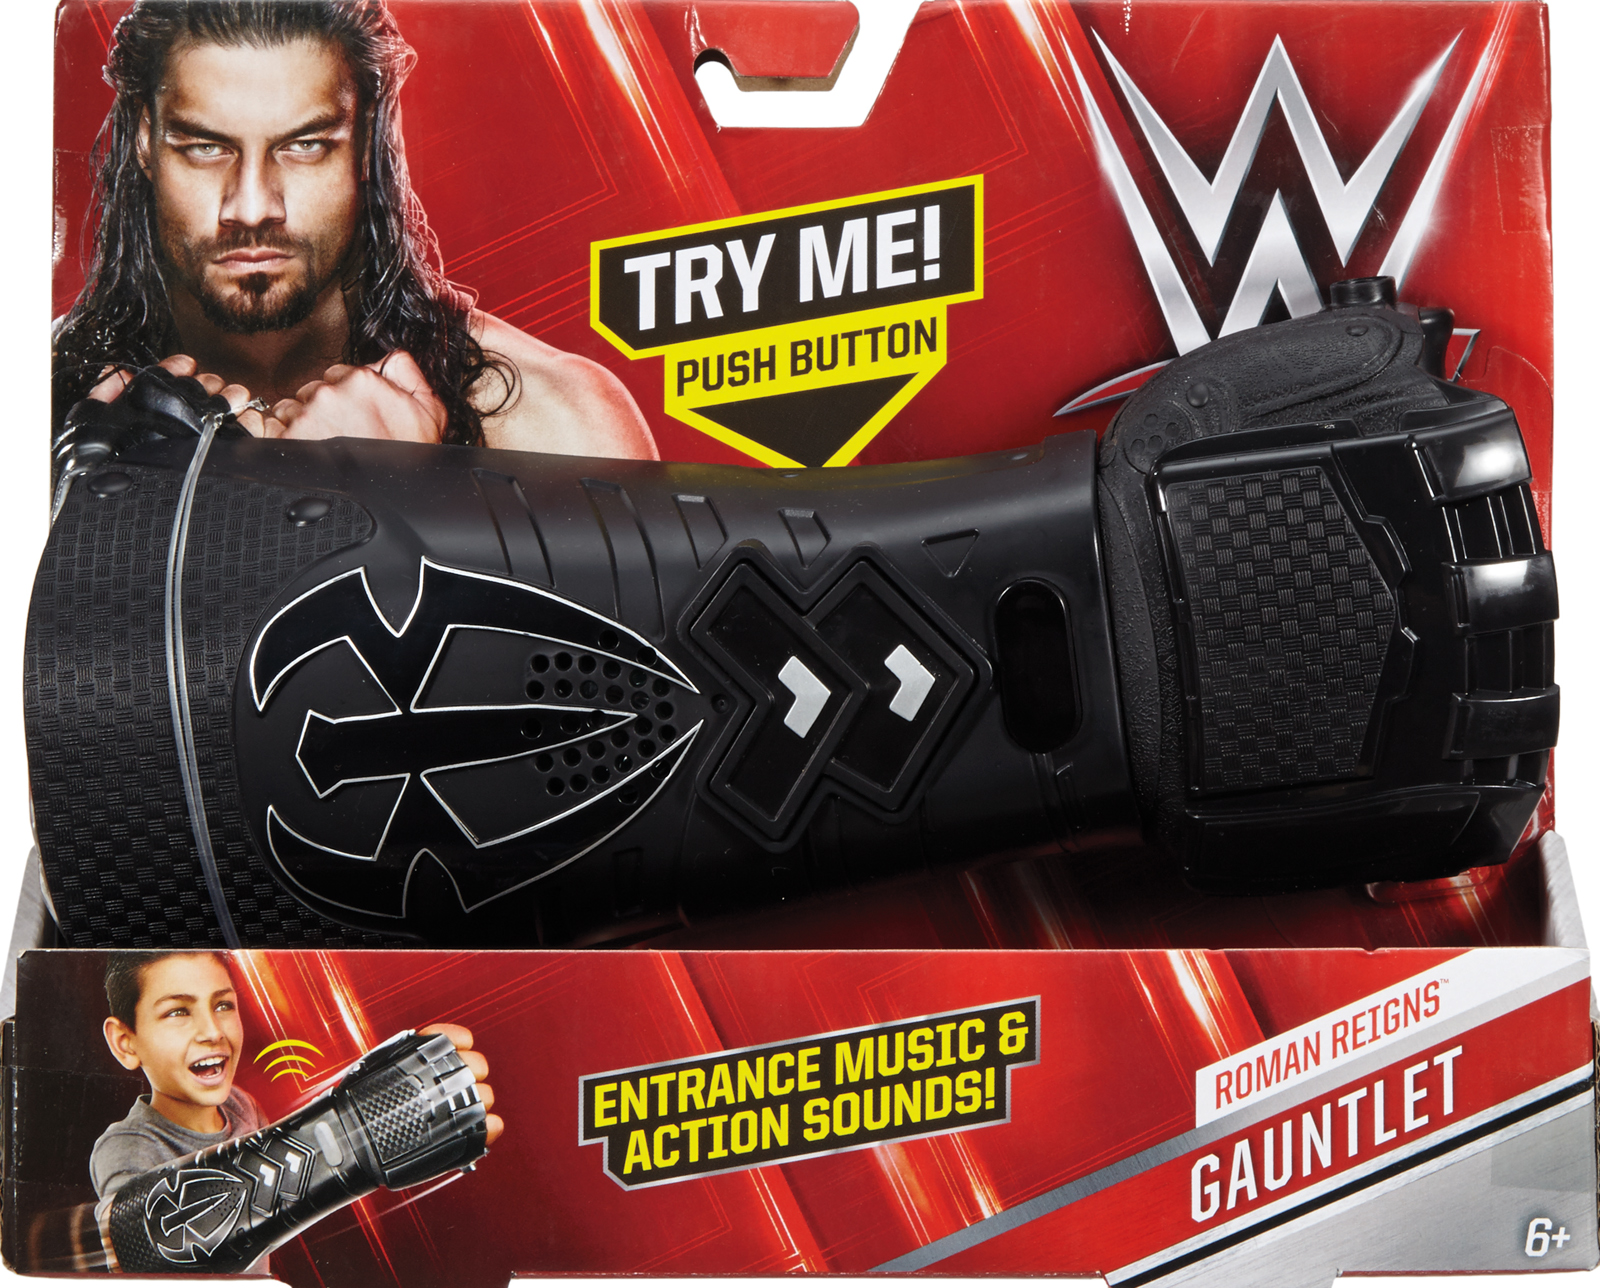 Roman Reigns WWE Wrist Gauntlet Wrestling Toy by Mattel